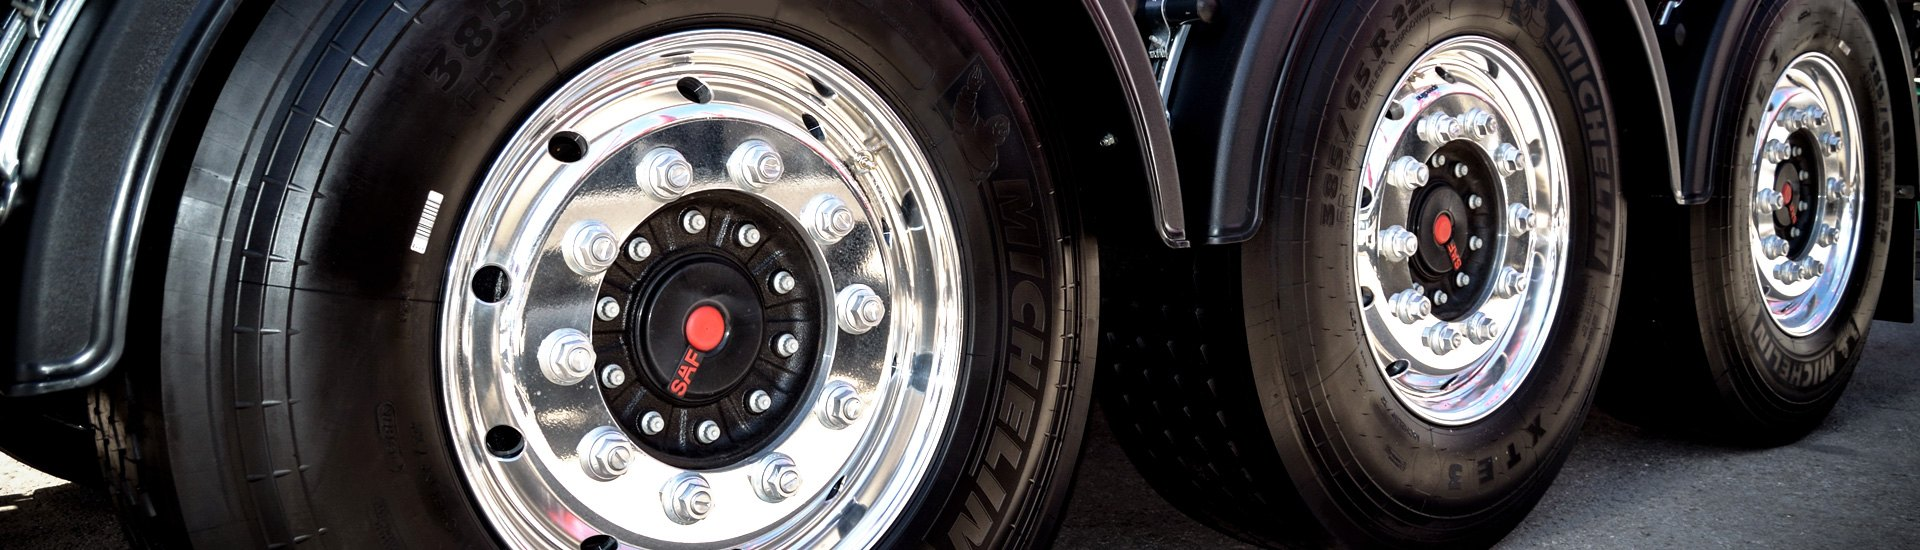 Semi-Truck Aluminum Wheels | Strong, Stylish, and Easy To Maintain